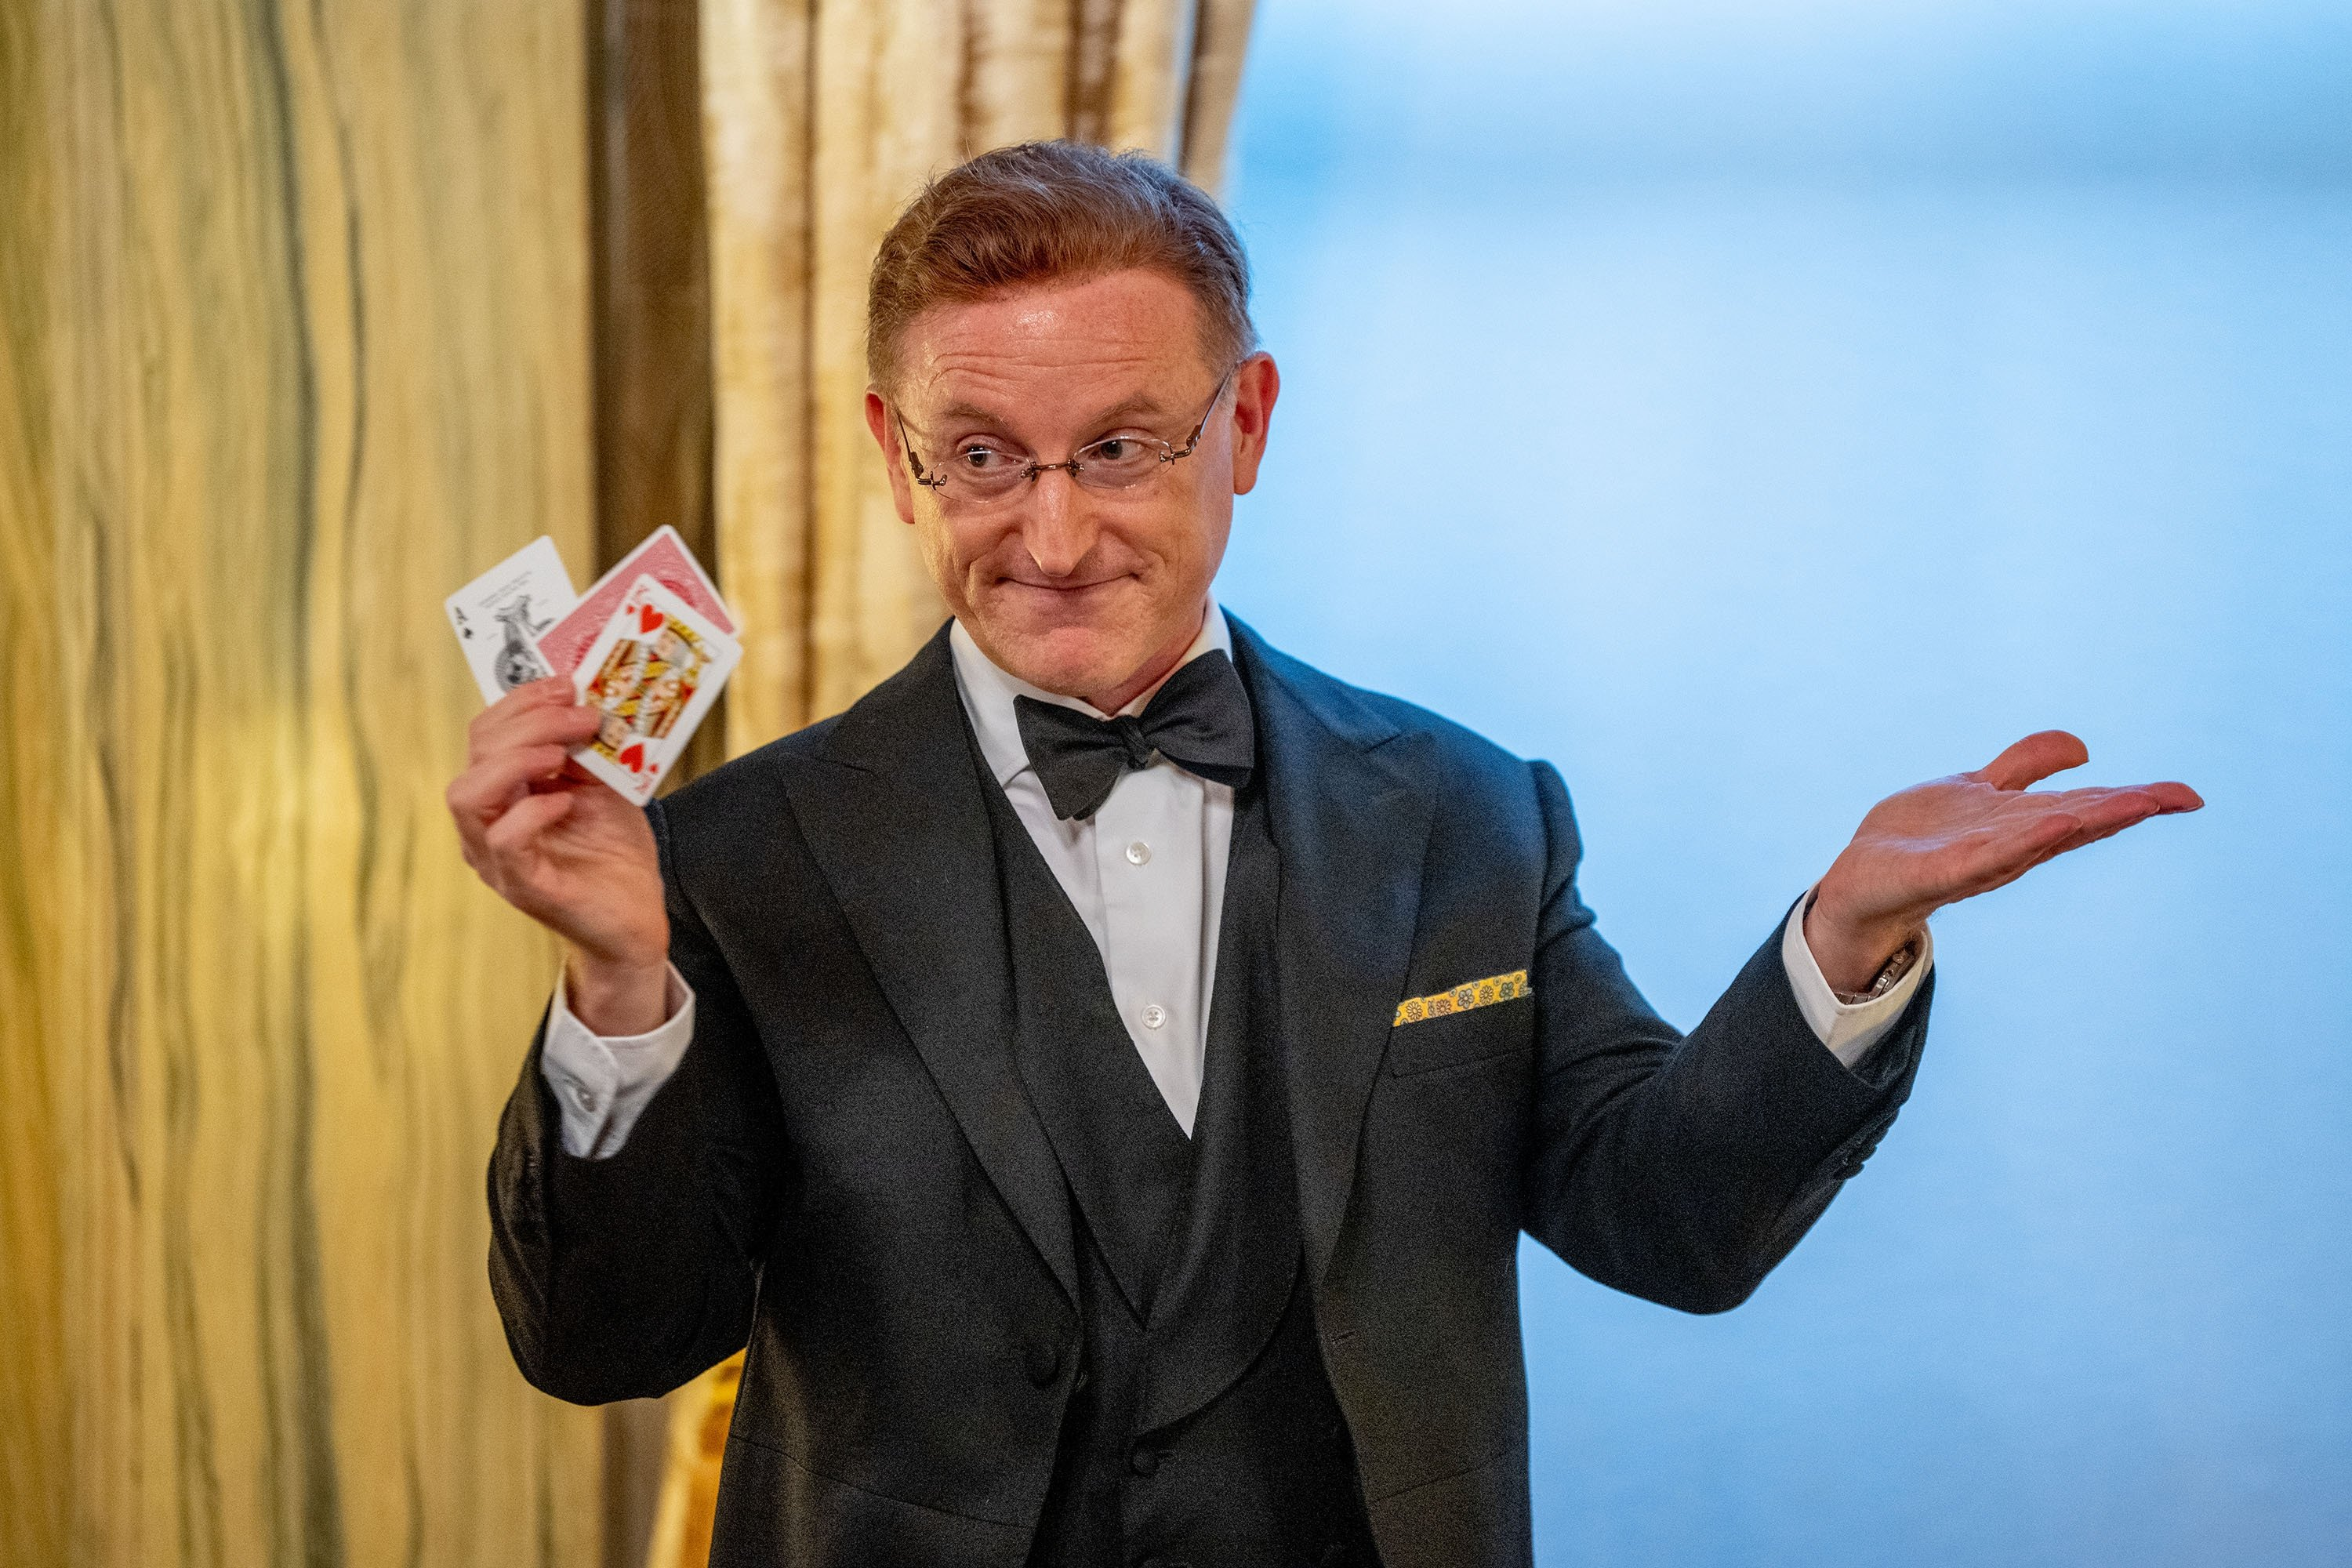 Magician Steve Cohen performs at Lotte New York Palace on June 04, 2021, in New York City. (Getty Images)